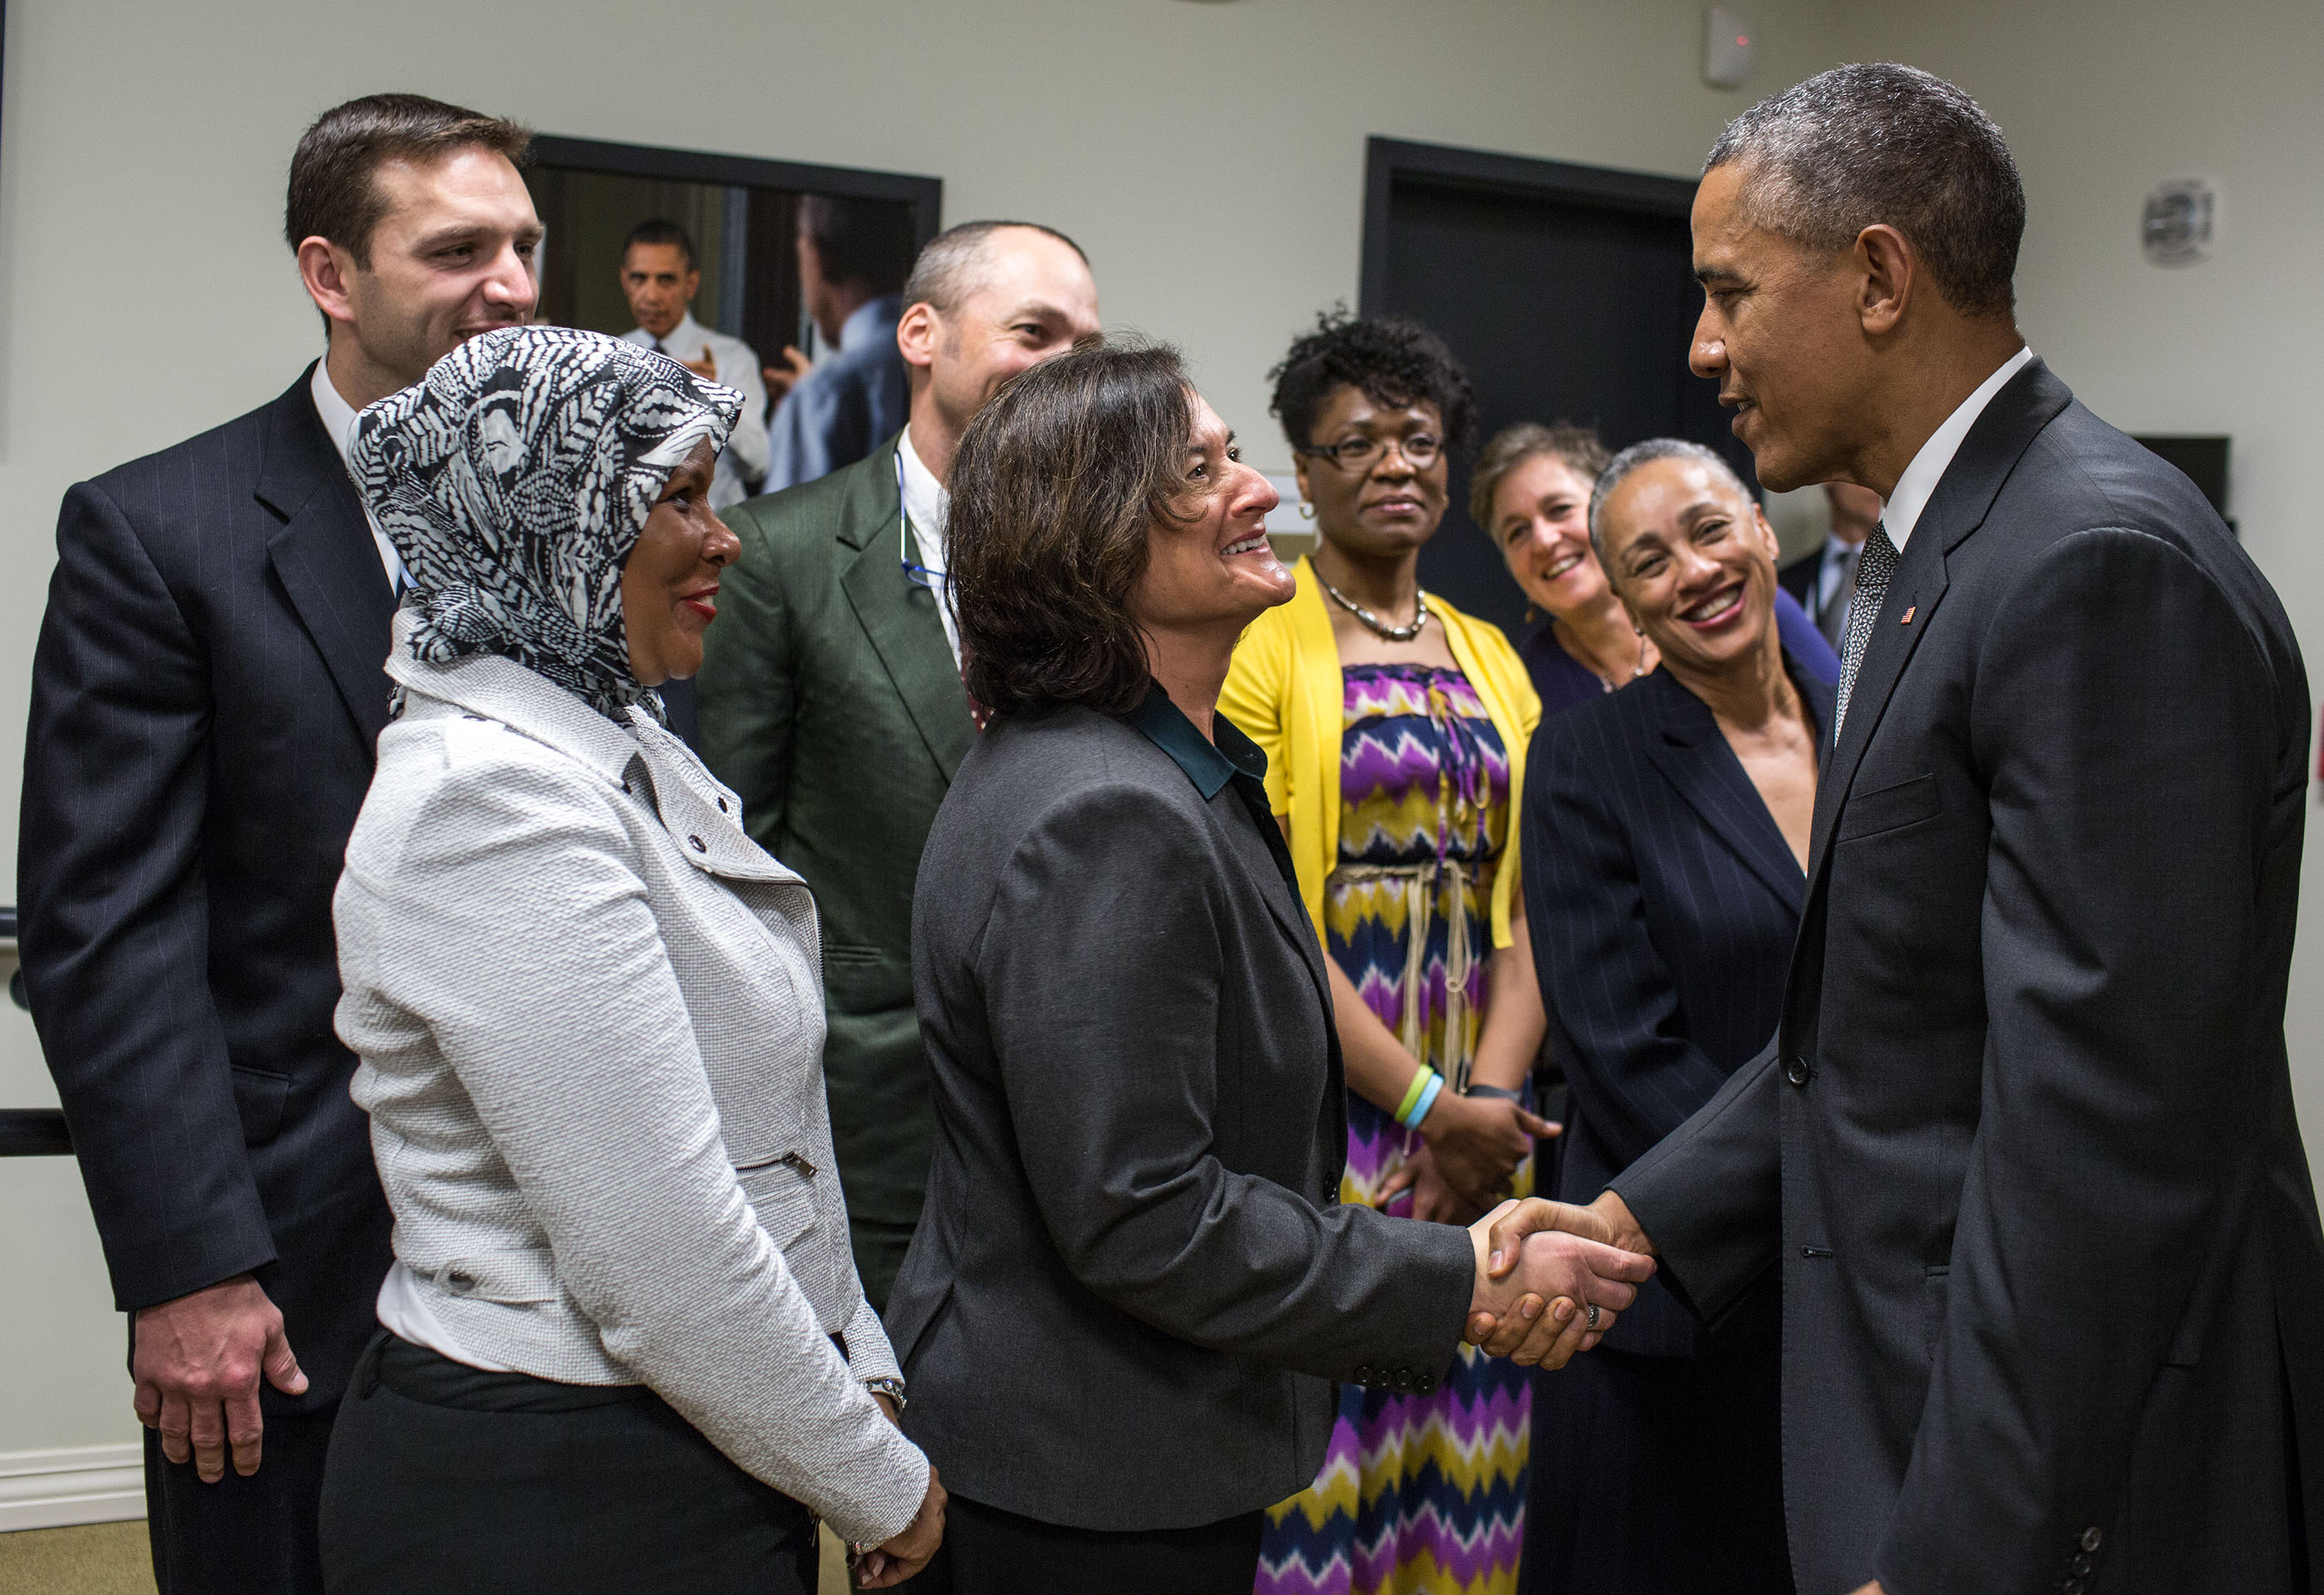 President Obama greets stage participants prior to a Champions of Change event